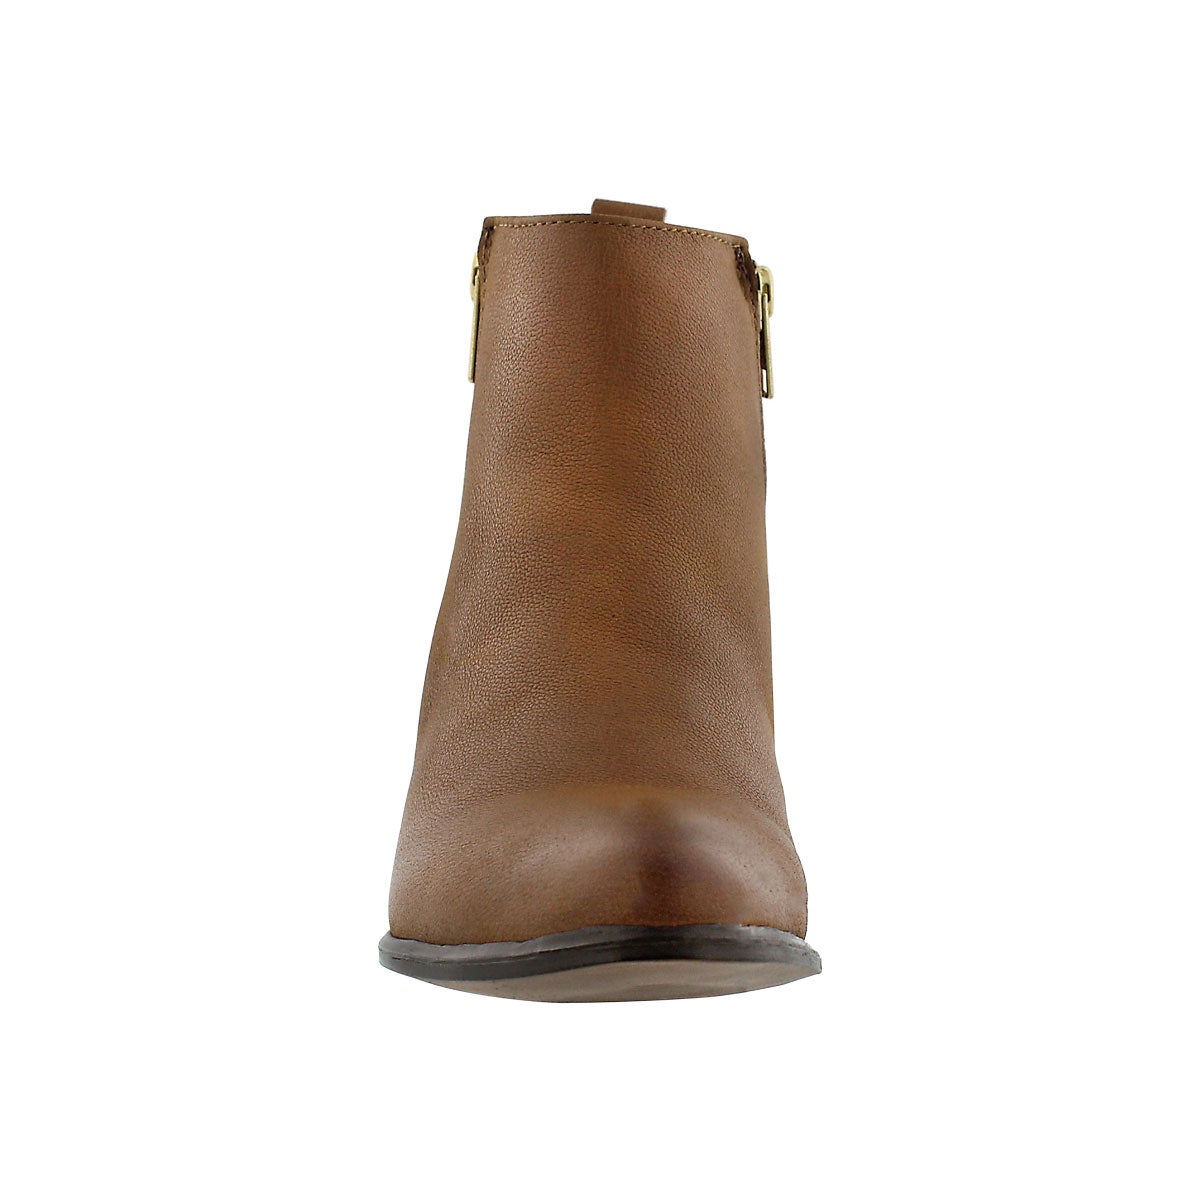 Lds Neovista cognc zip up ankle boot